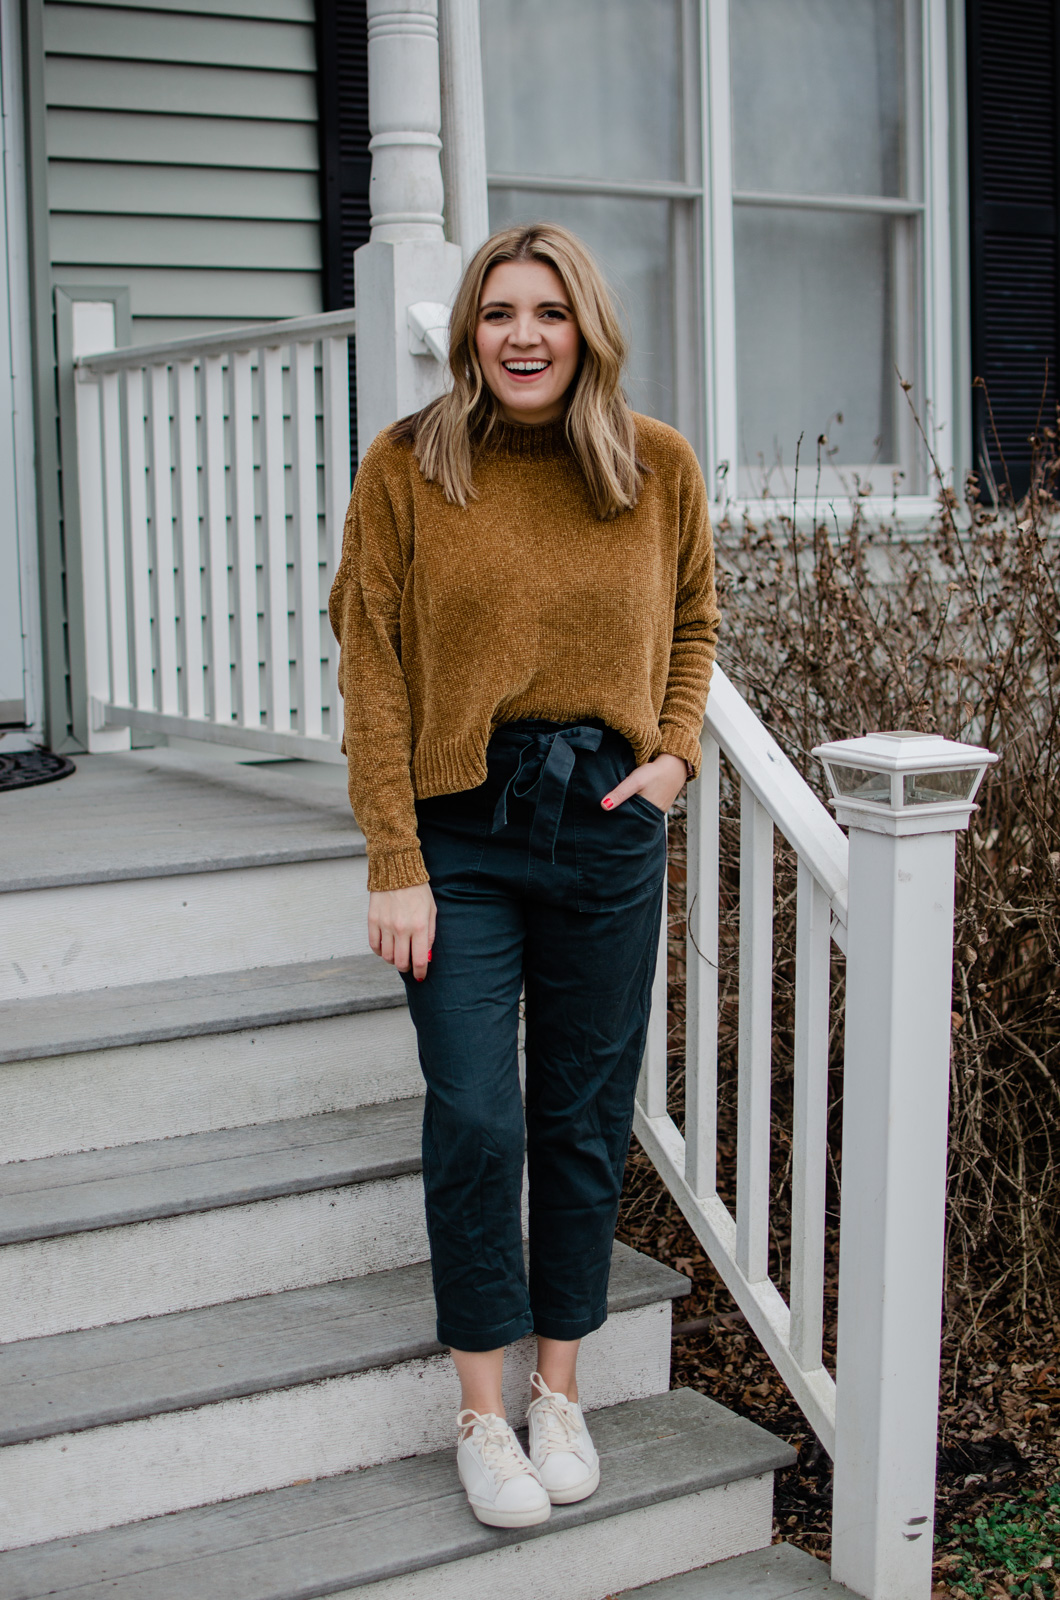 Affordable style blogger, Lauren Dix, shares six white sneakers outfits for winter and fall. See all the outfits at bylaurenm.com